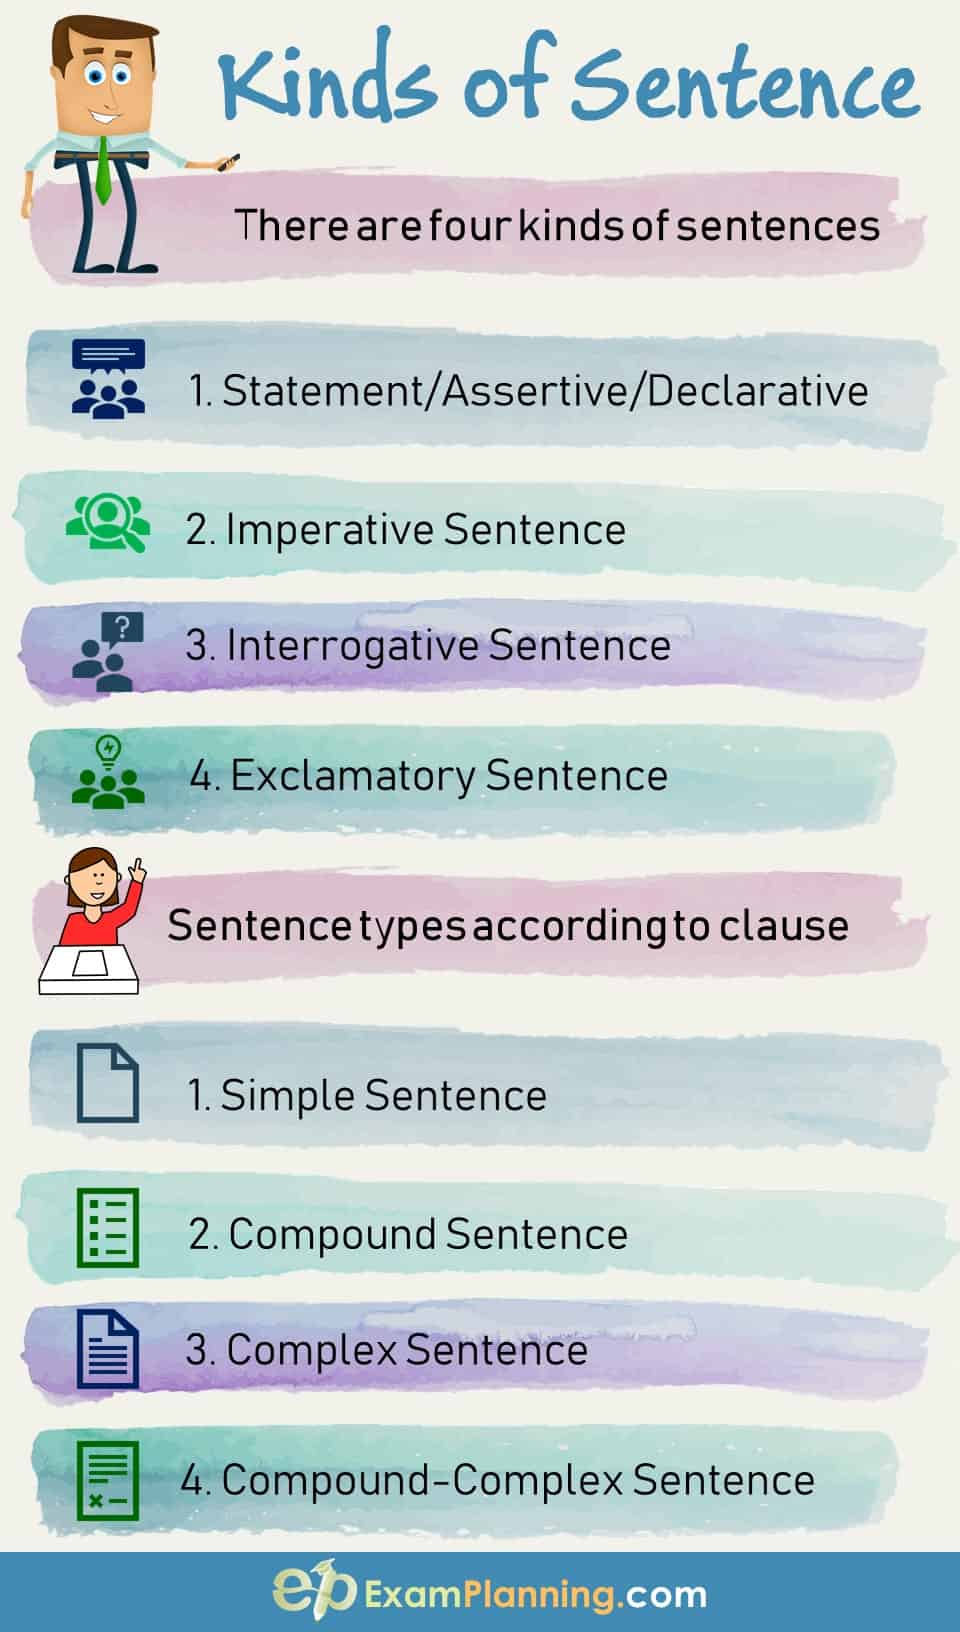 Kinds of sentence according to structure